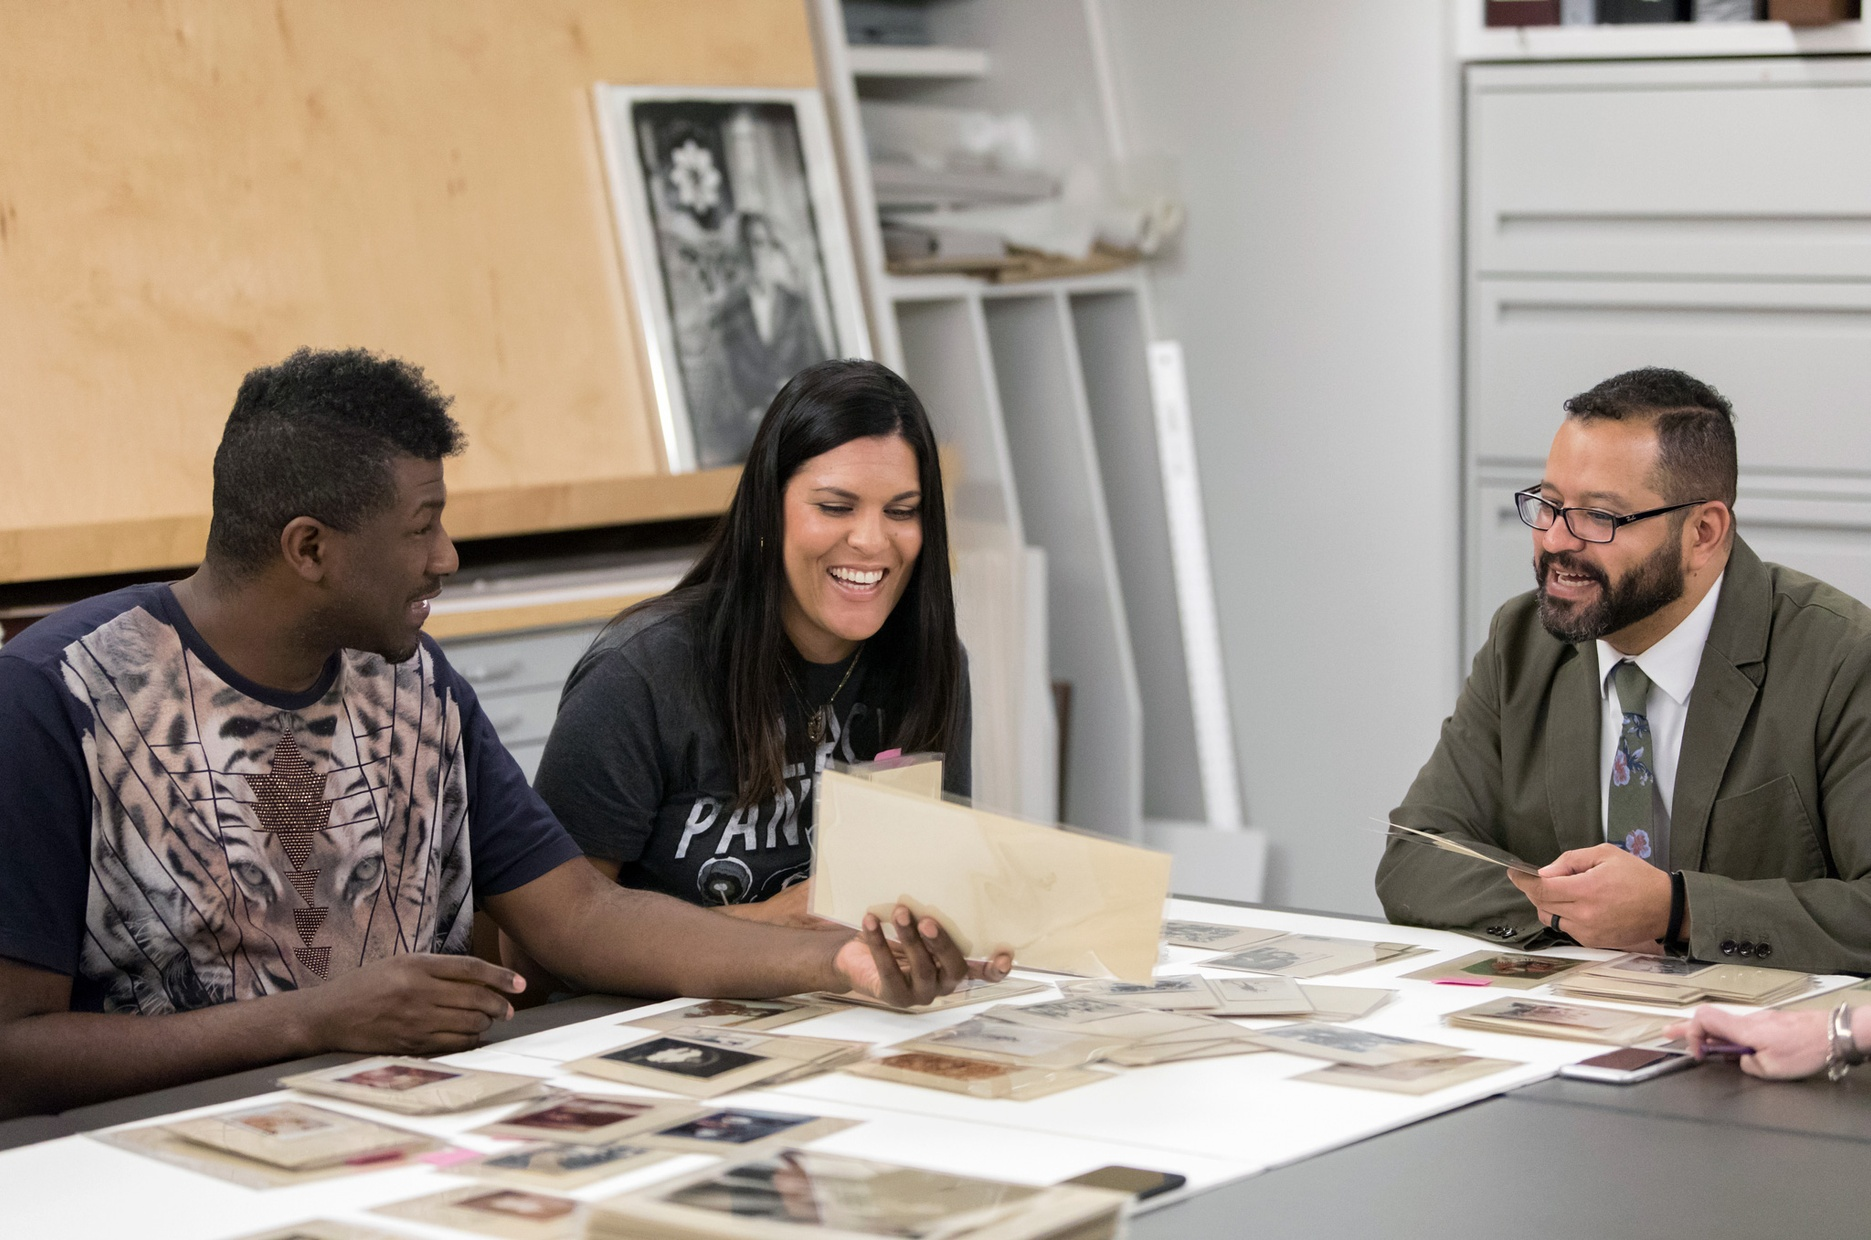 Three people sit around a table laughing and smiling looking at photographs laid out on the table.